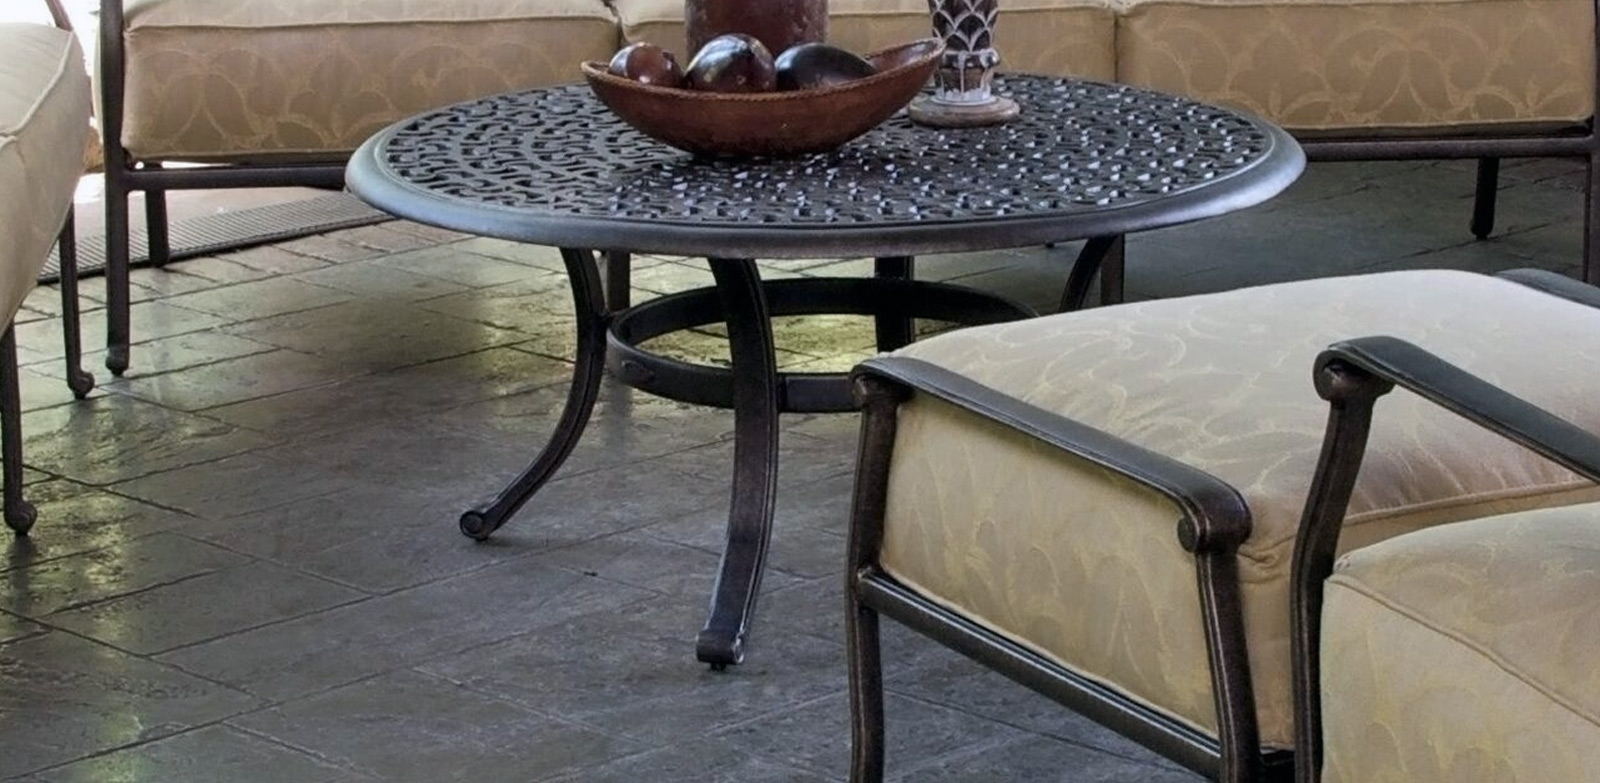 Sienna Tables – Castelle Luxury Outdoor Furniture Throughout Most Up To Date Outdoor Sienna Dining Tables (Image 19 of 20)